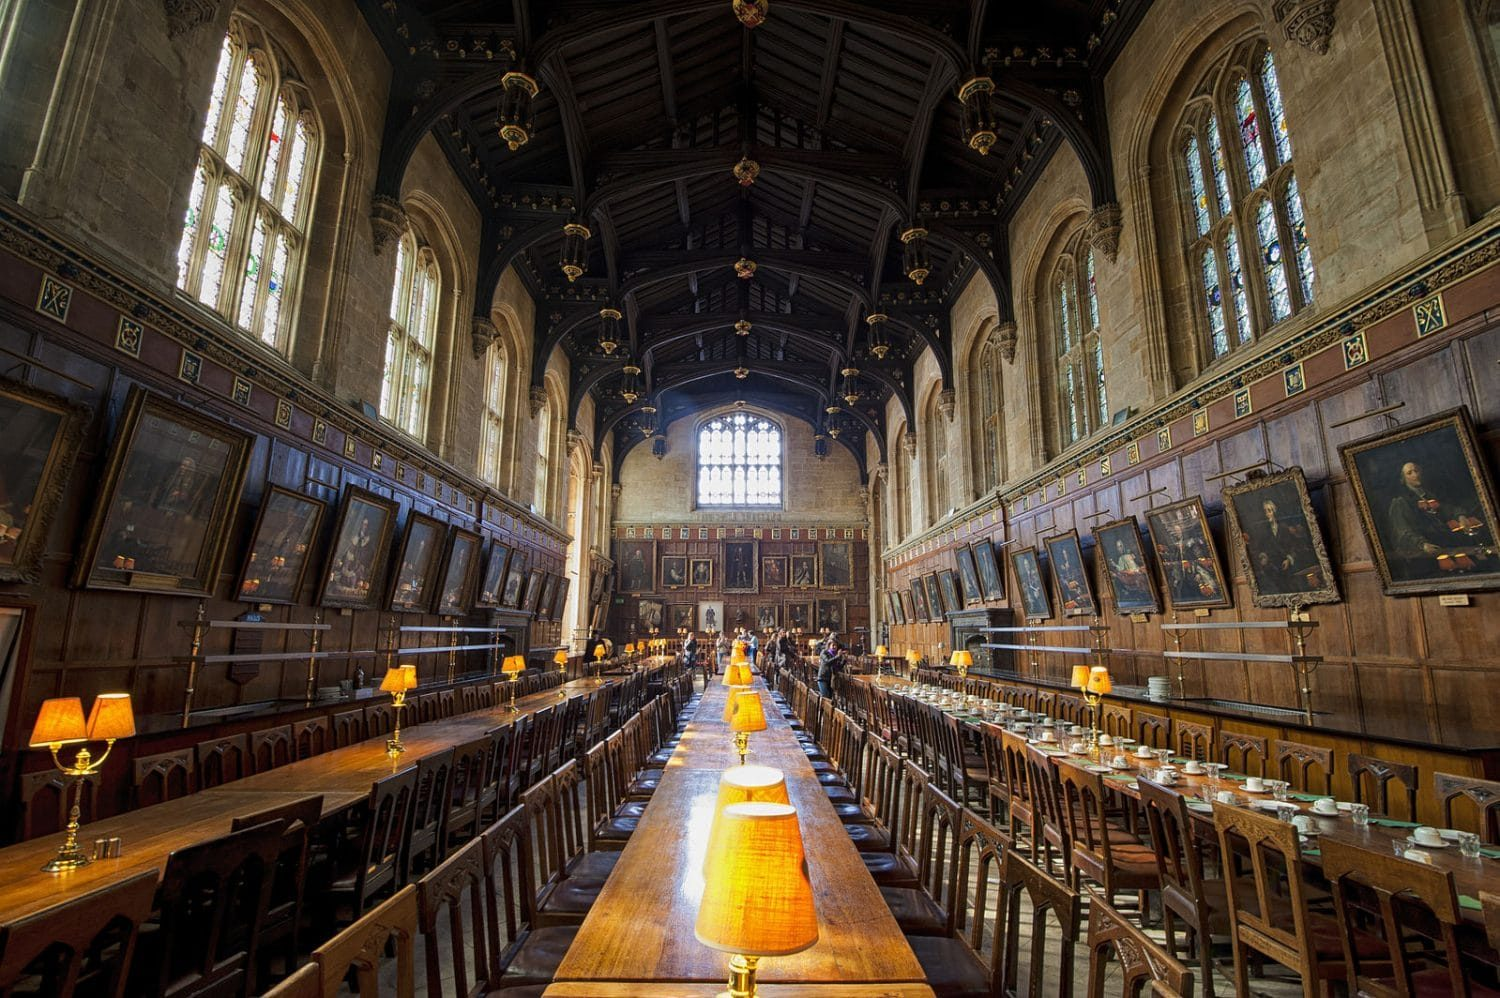 Christ Church College Dining Hall in Oxford as seen in Harry Potter